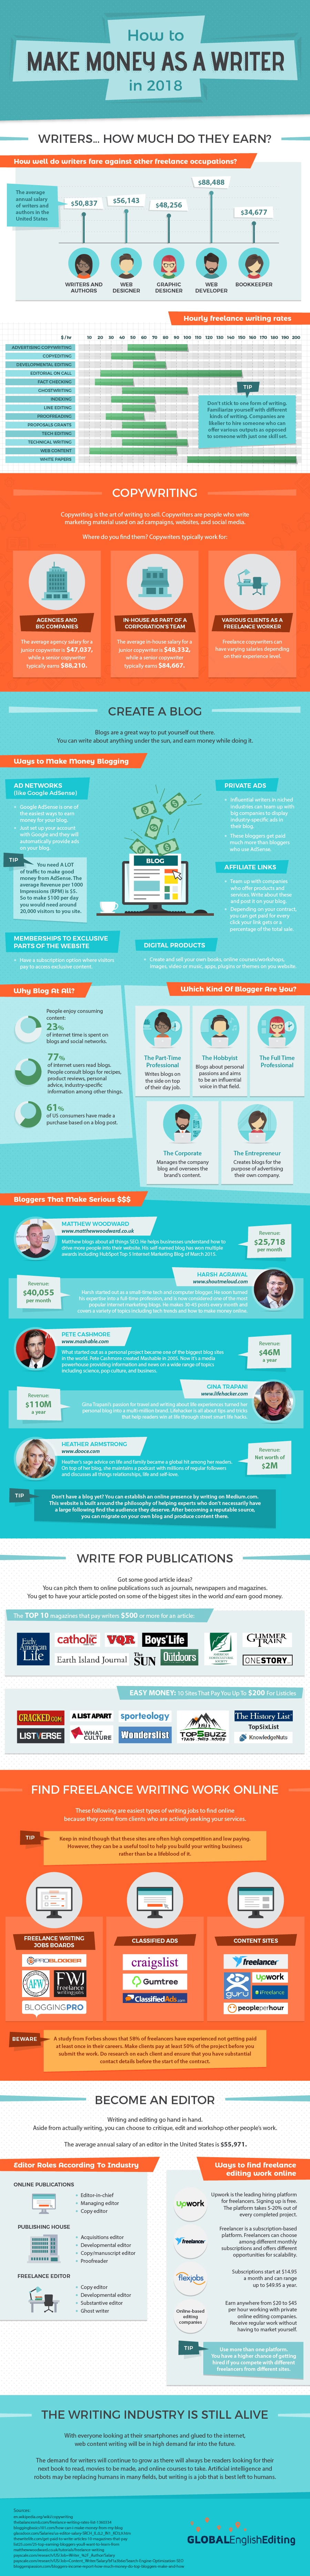 How to Convert Your Passion for Writing into a Great Money-Earner - Infographic